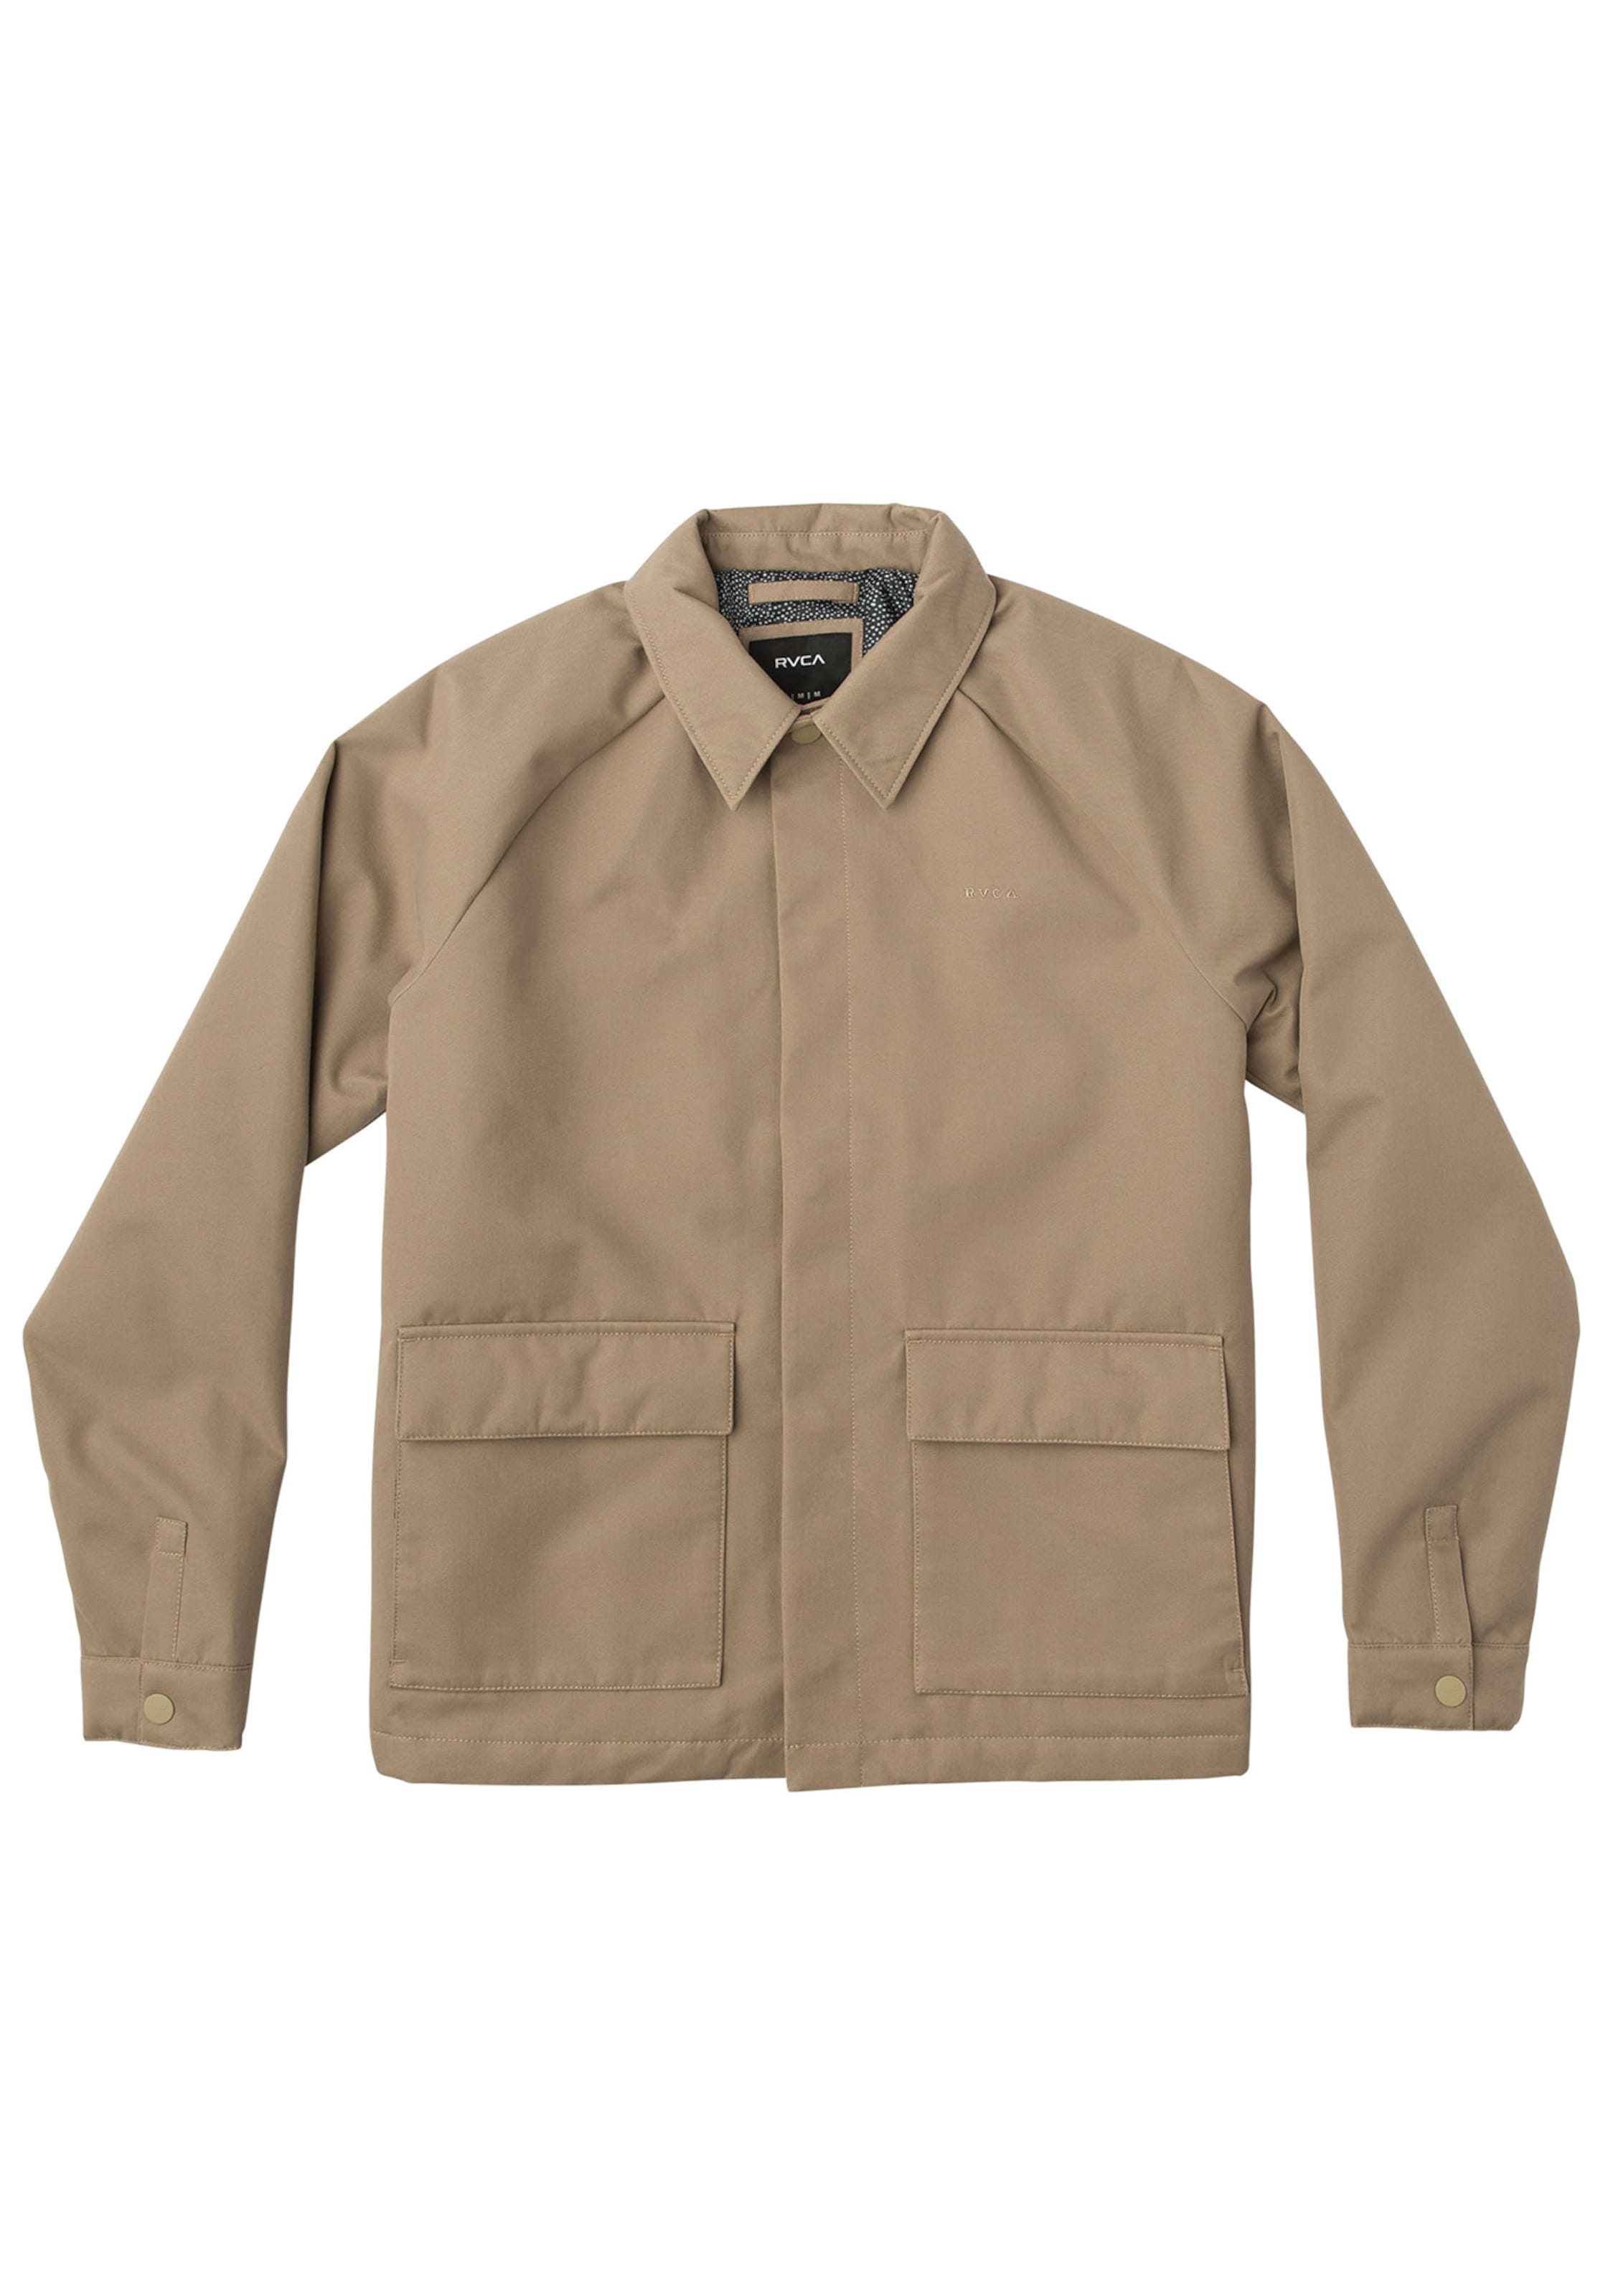 Year' In Of 'coach The Rvca Jacke Camel QWoedxrECB